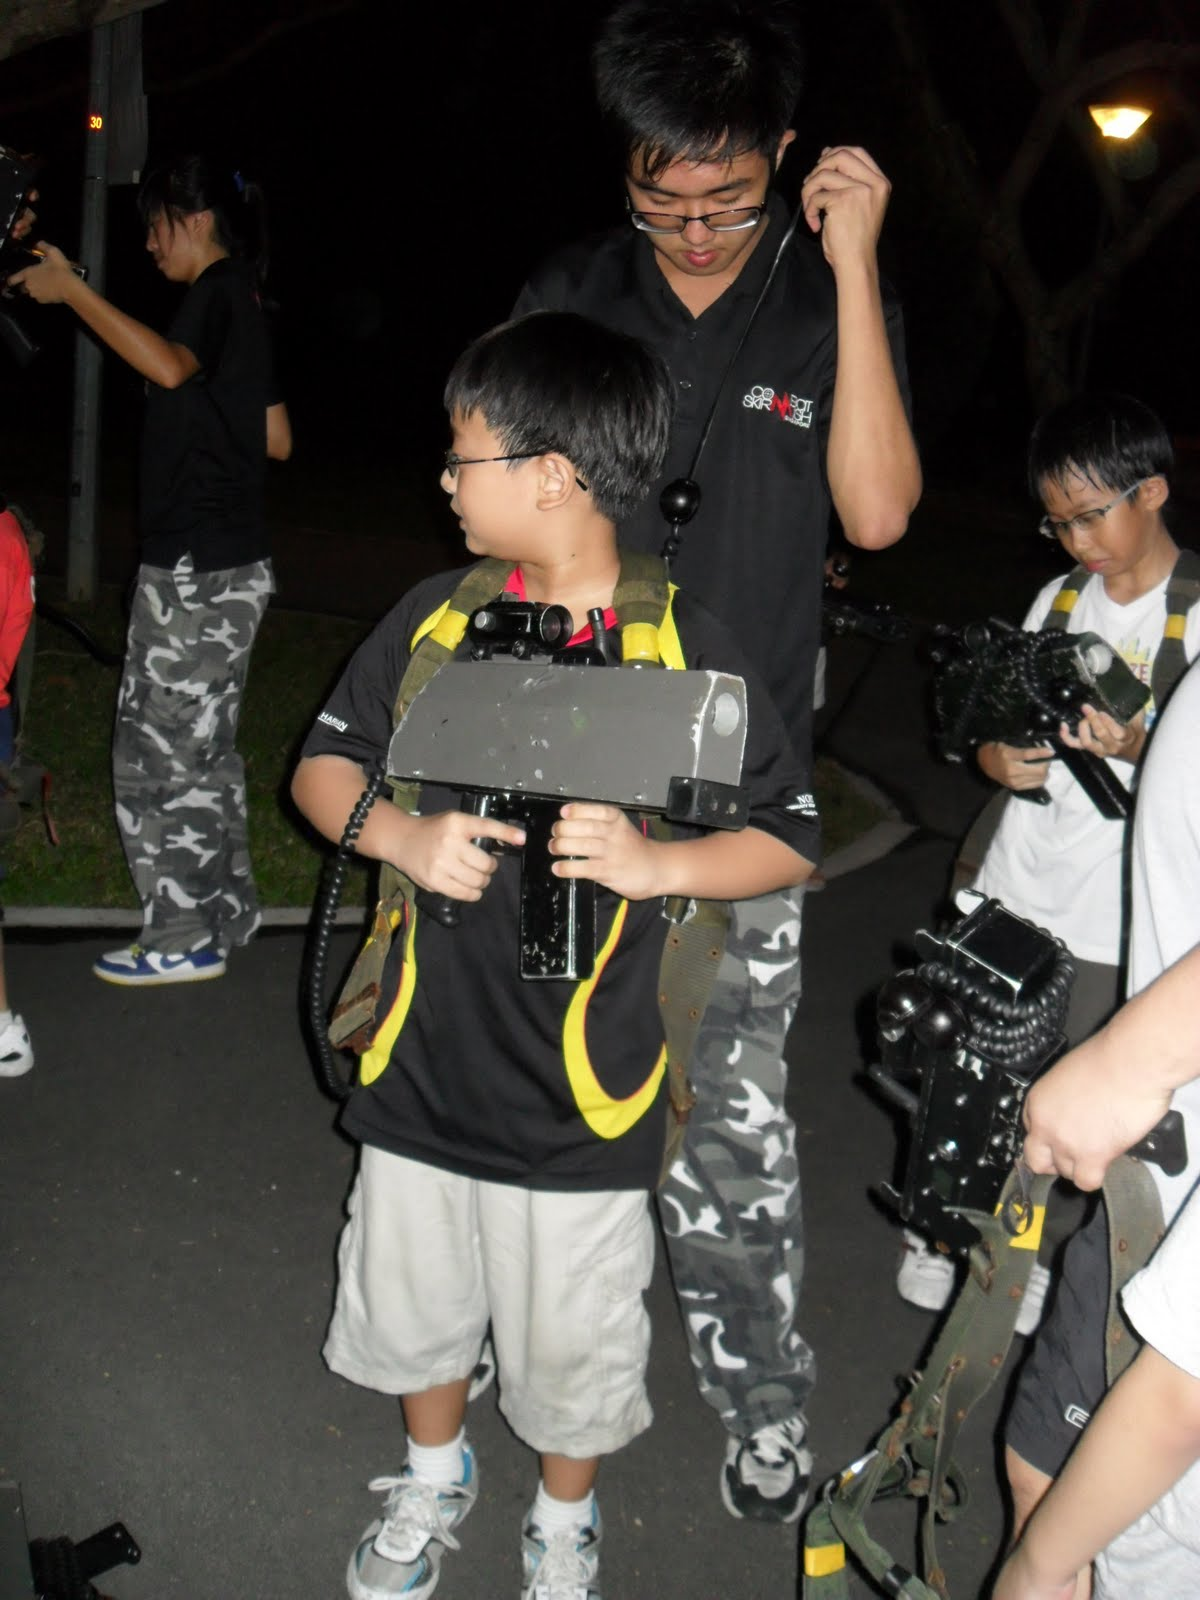 Of Kids and Education: Combat laser tag with dad